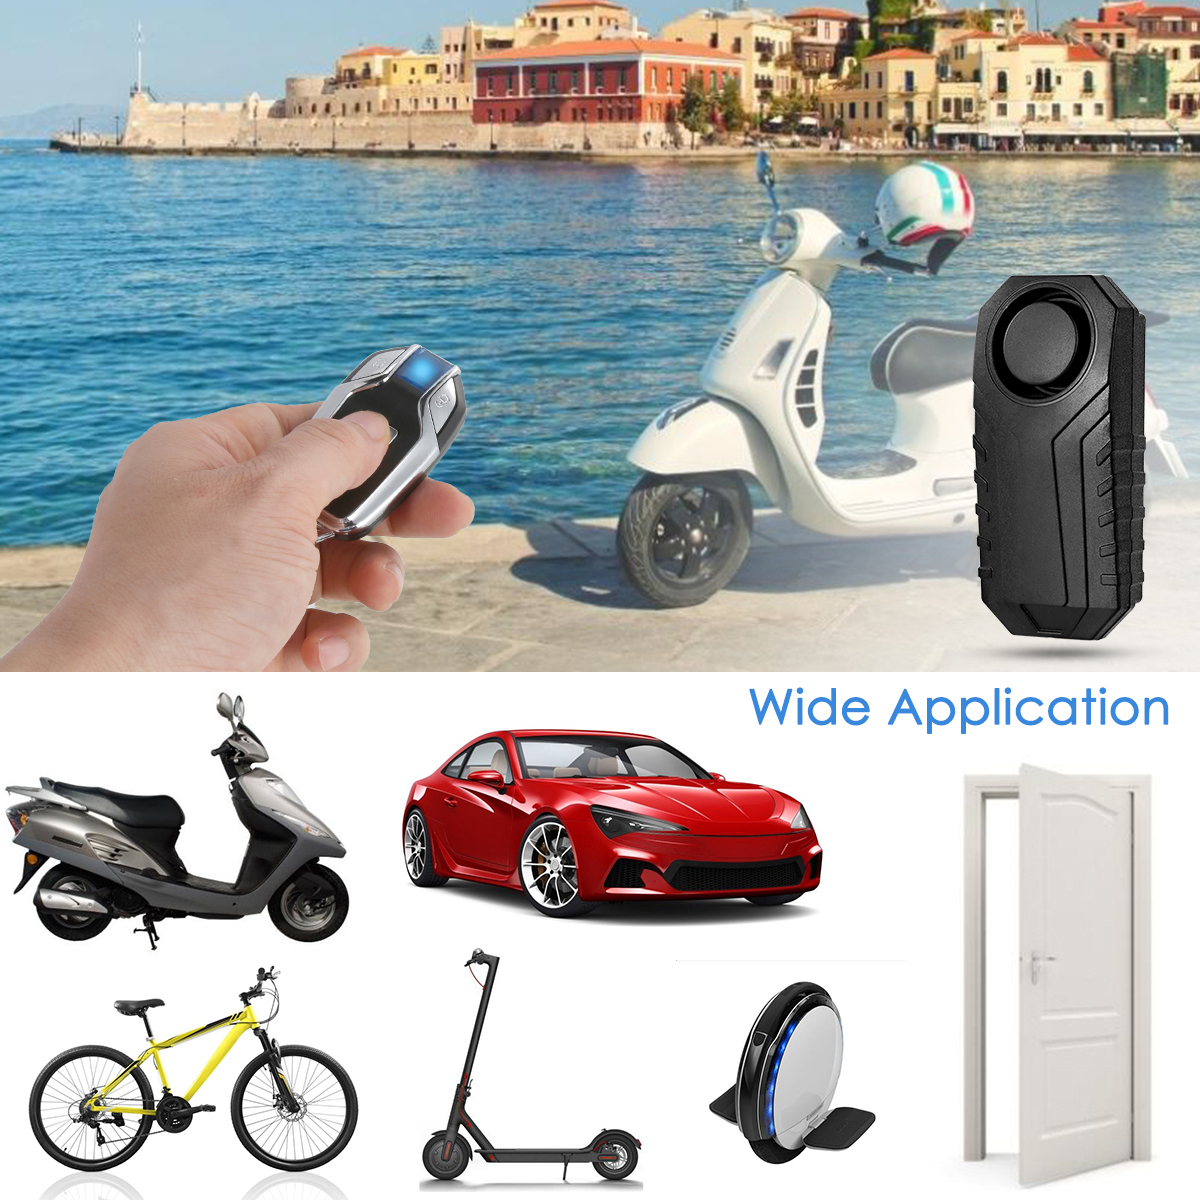 113dB Anti-Theft Wireless Alarm Vibration Remote Control Motorcycle//Bicycle IP55